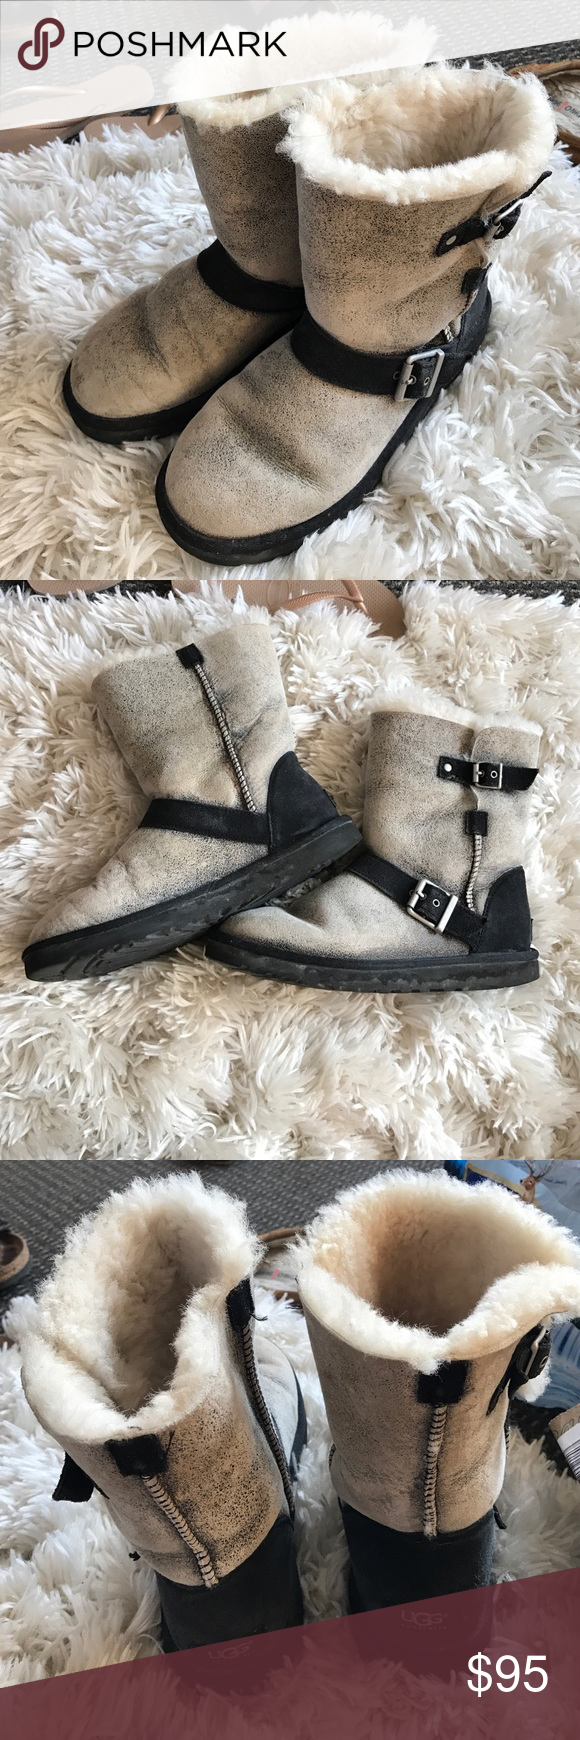 UGG buckled short boots black/grey In fairly good condition UGG Shoes Winter & Rain Boots